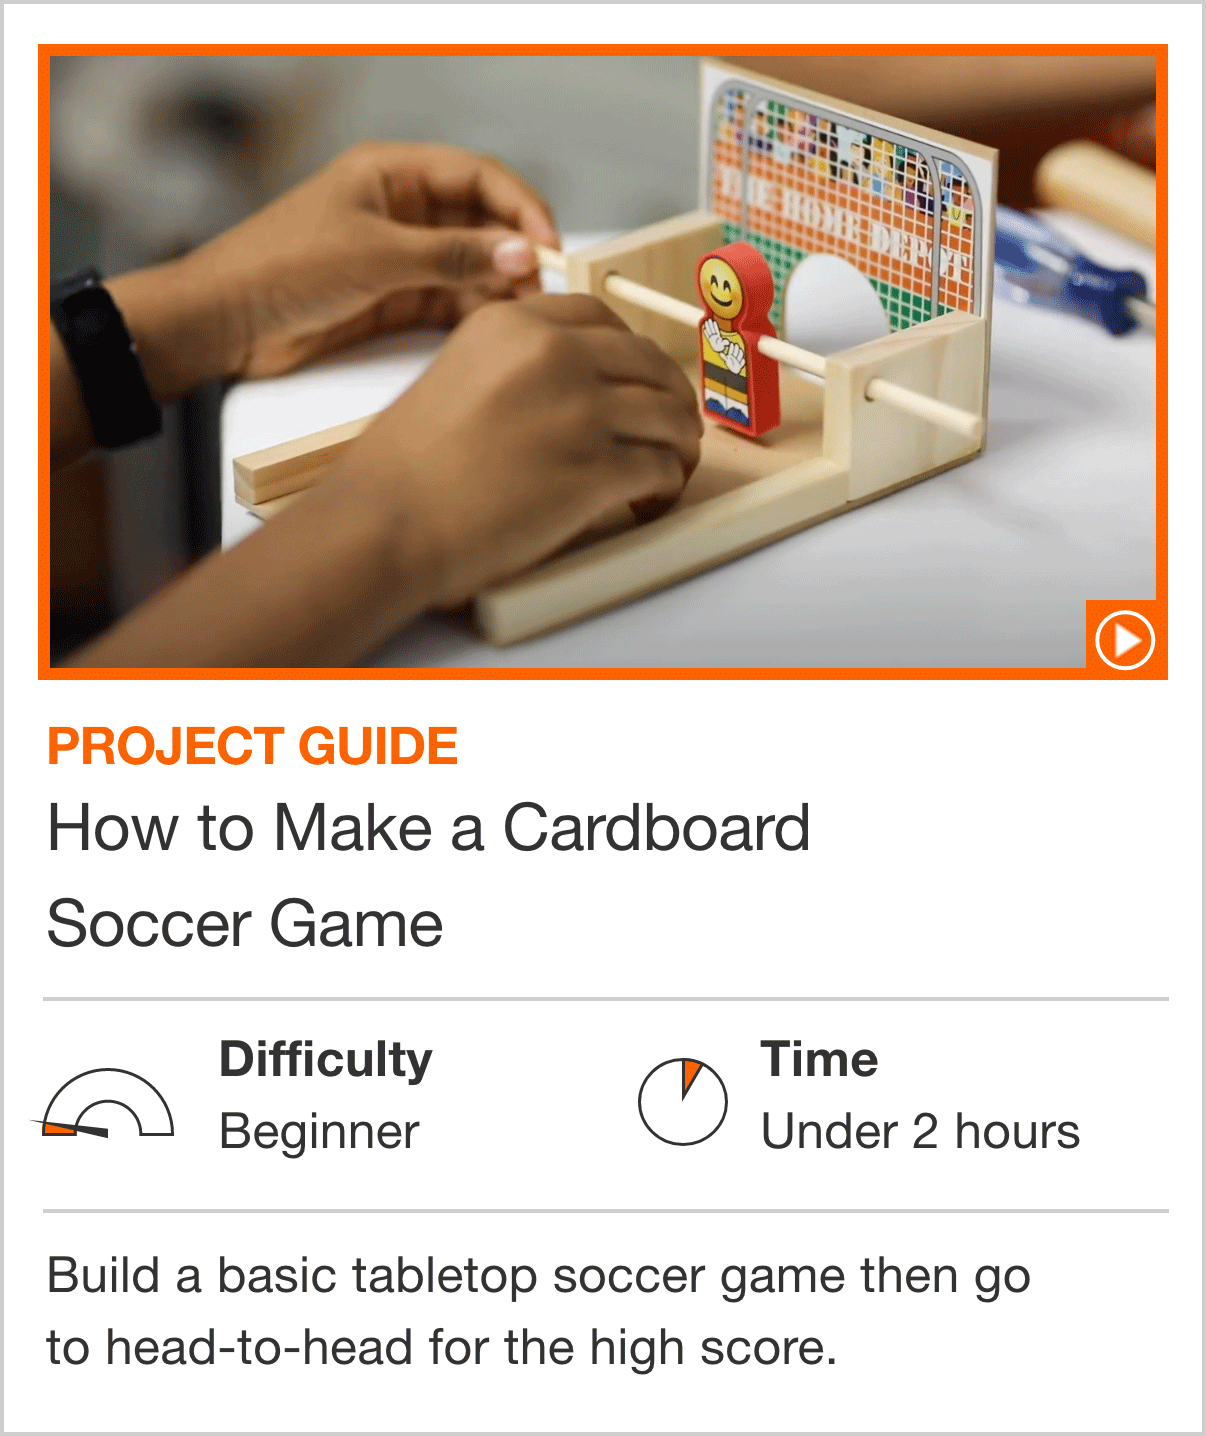 How to Make a Cardboard Soccer Game